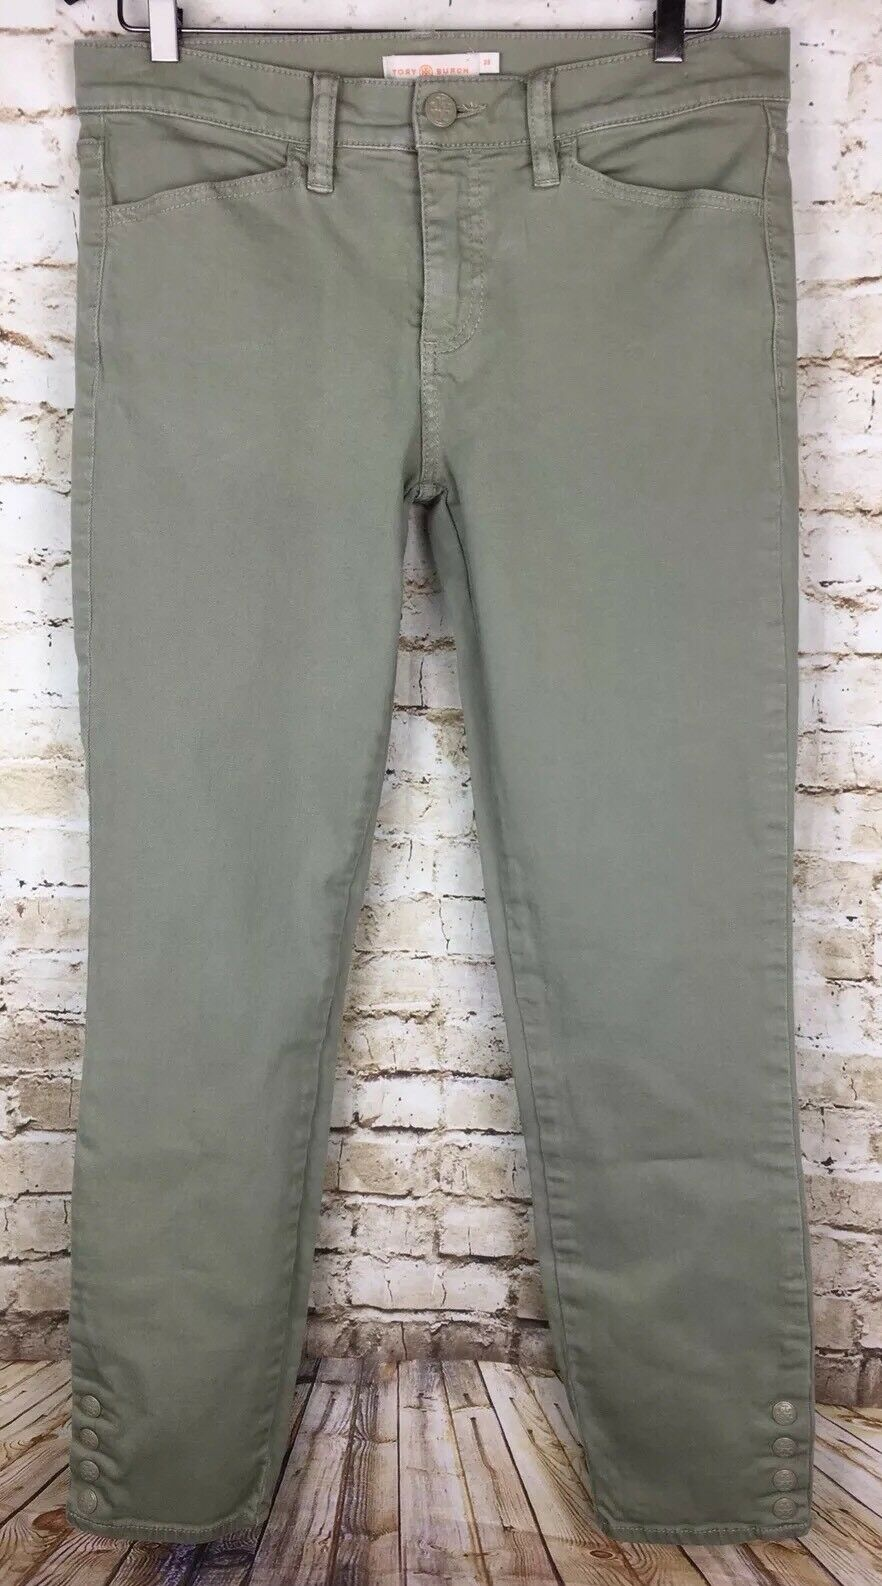 Tory Burch Jeans 28 Olive Green Straight Leg Button Accents New